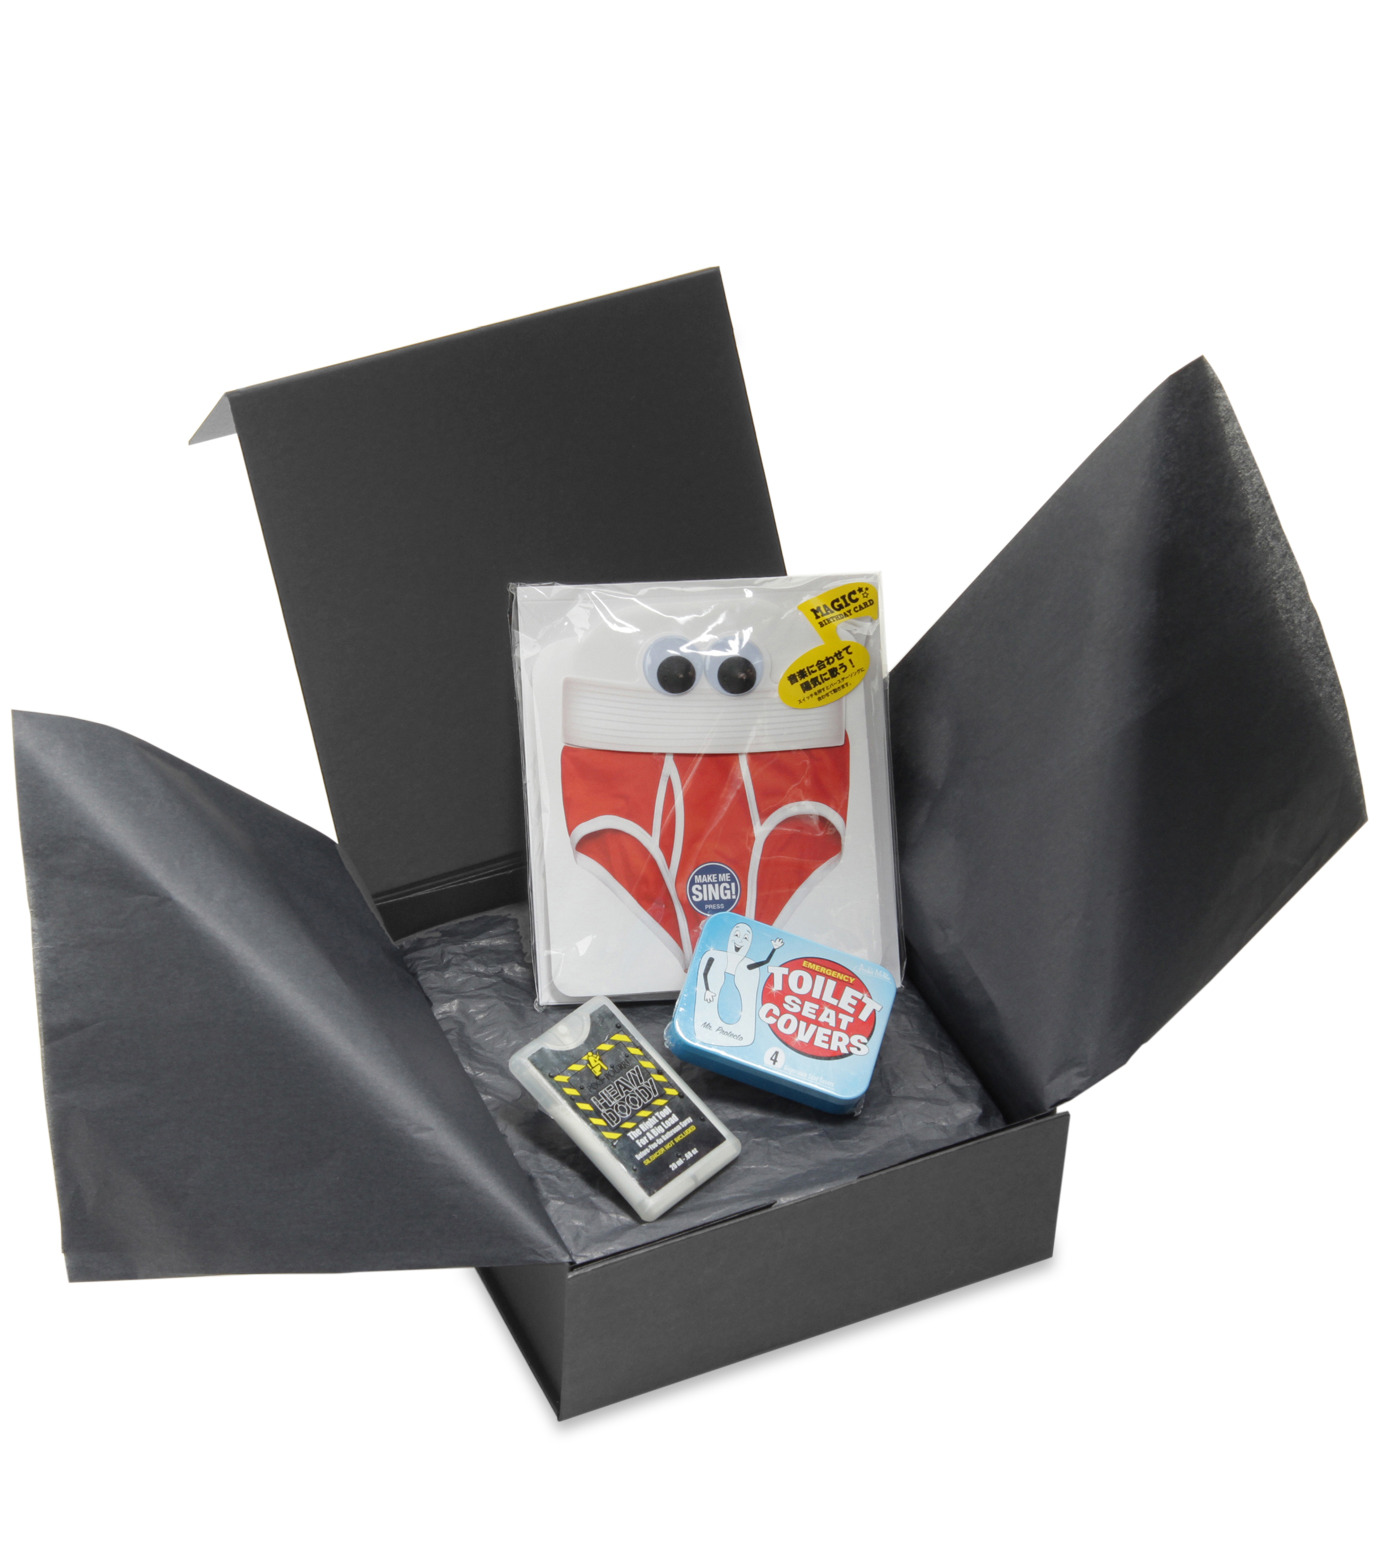 Gift Set(ギフトセット)のToilet-NONE-Giftset-toil-0 拡大詳細画像1